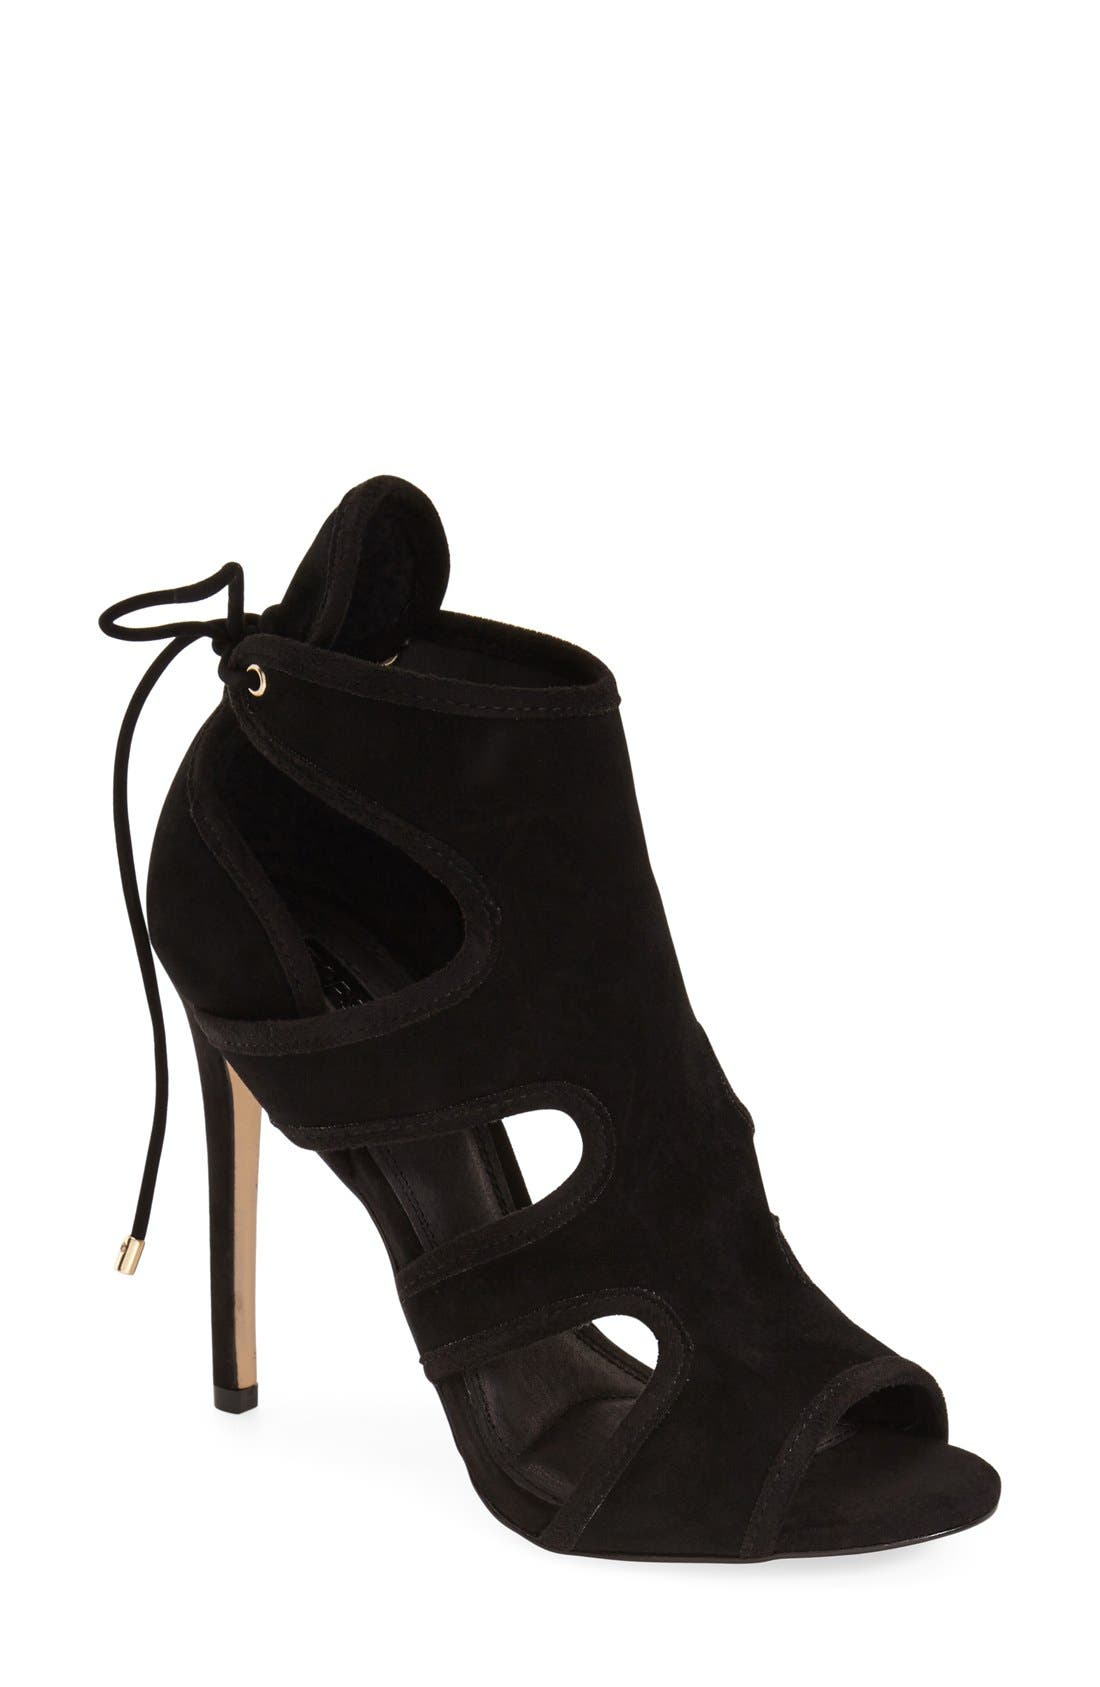 Alternate Image 1 Selected - Topshop 'Reveal' Cutaway' Sandal (Women)